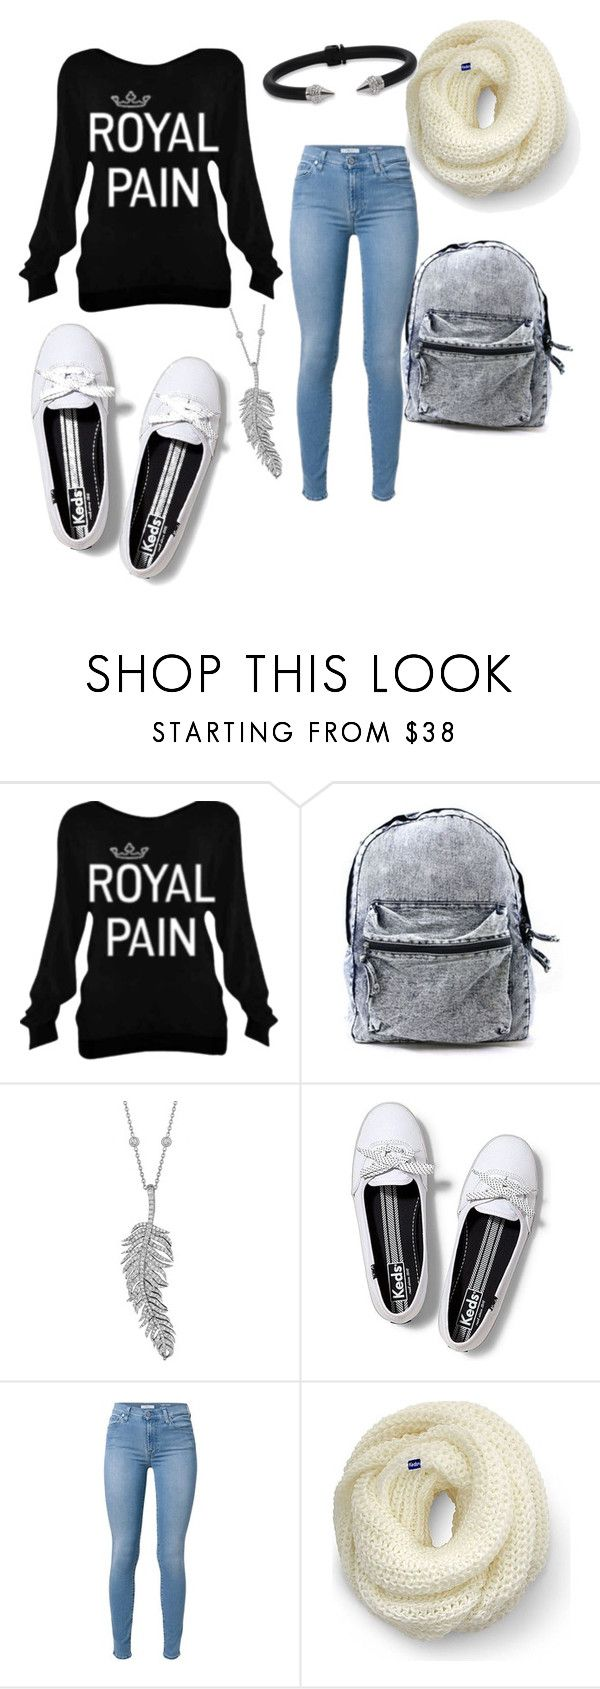 """""""College"""" by alinesantos16 ❤ liked on Polyvore featuring Penny Preville, Keds and Vita Fede"""